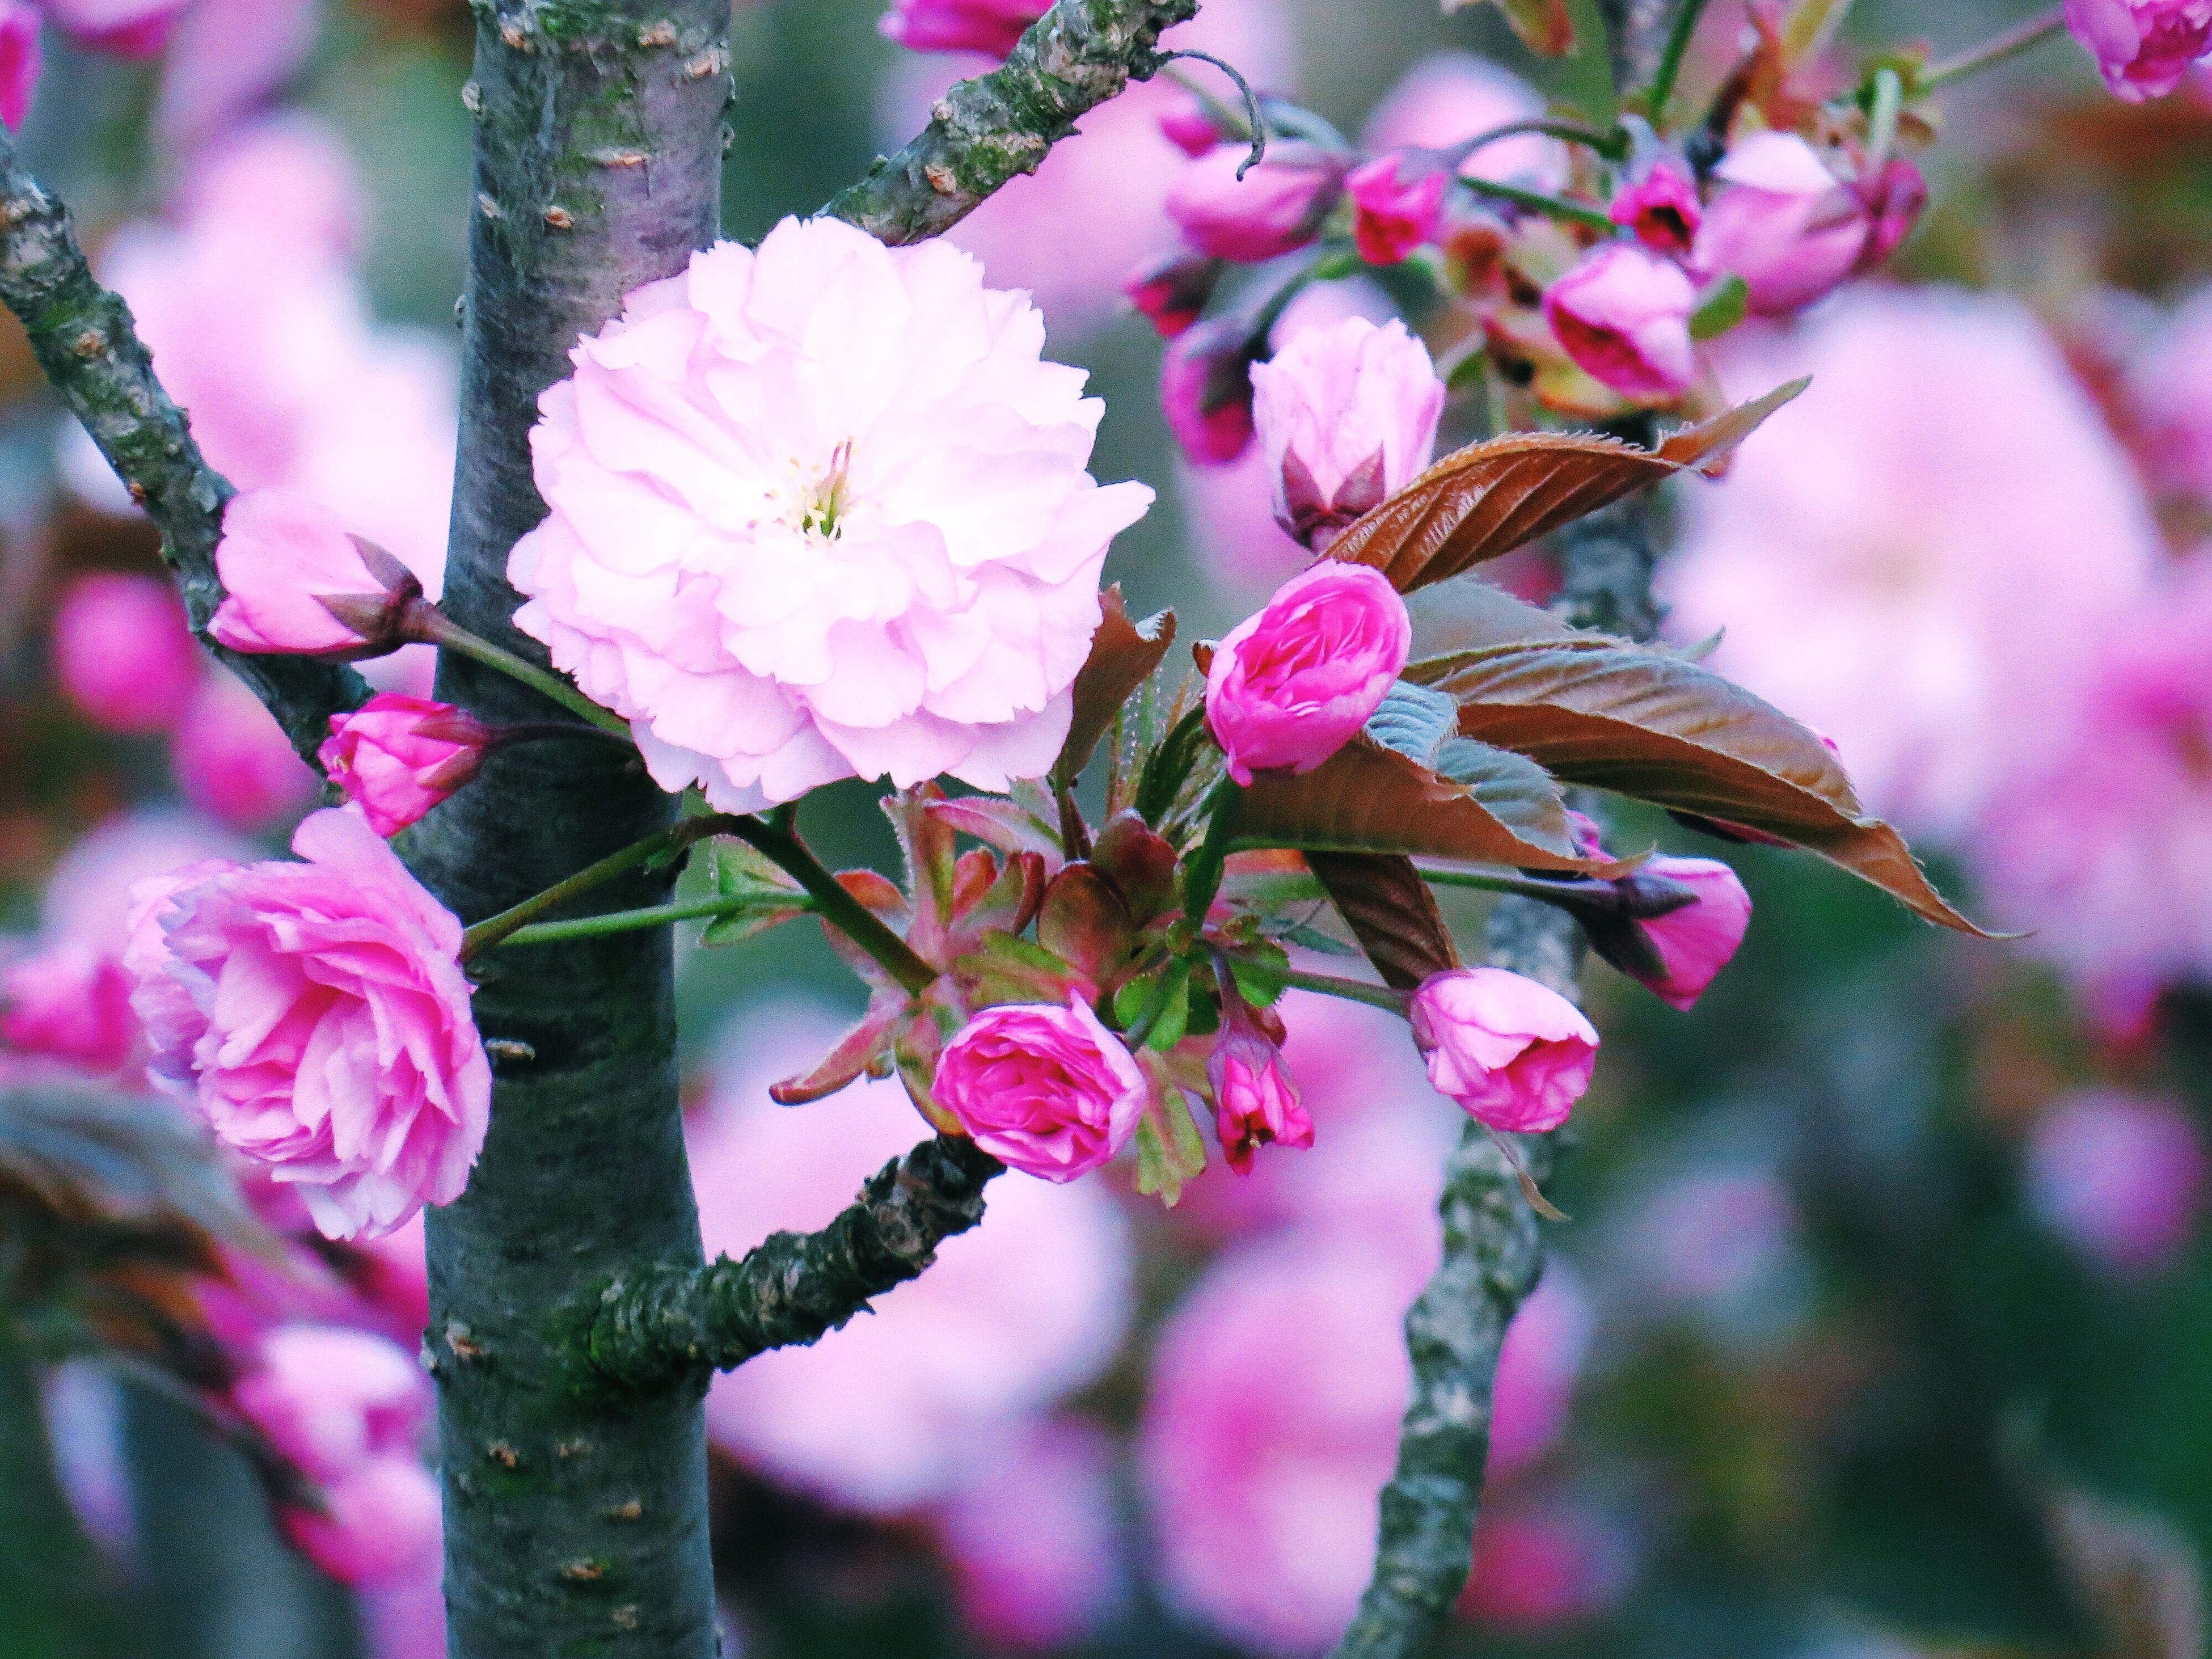 flower, nature, pink color, growth, beauty in nature, fragility, petal, freshness, flower head, plant, close-up, outdoors, blooming, no people, day, rhododendron